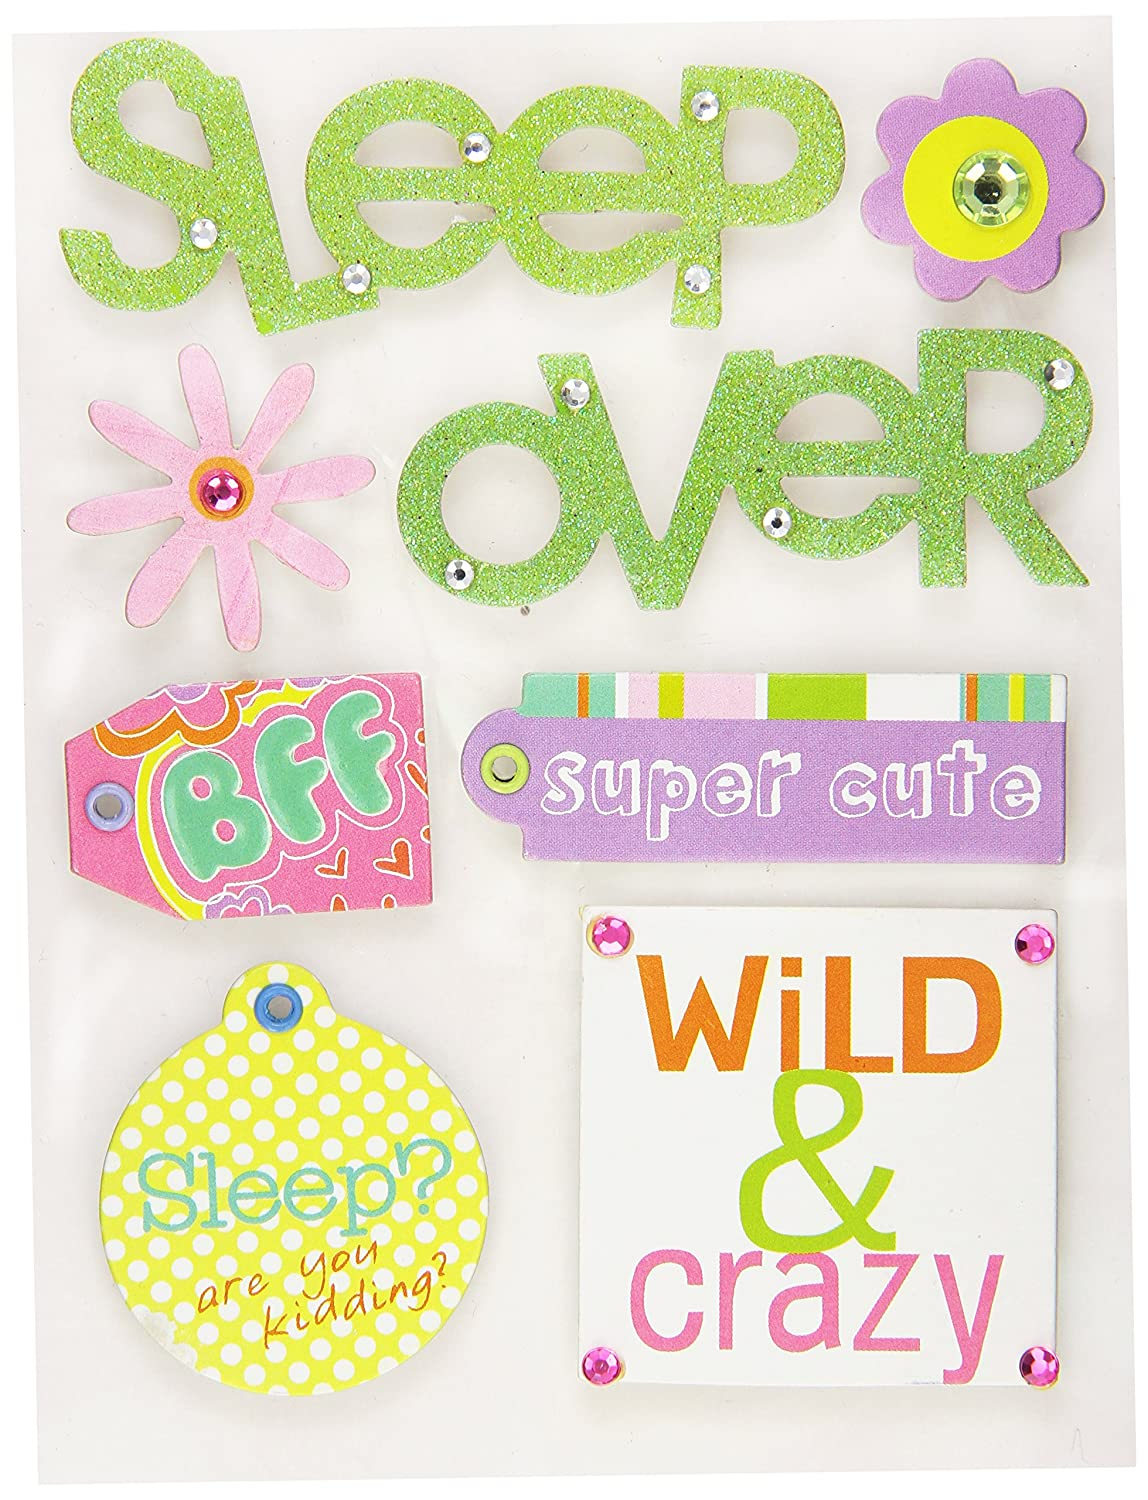 Me & My Big Ideas Soft Spoken Themed Embellishments, Allison Sleep Over